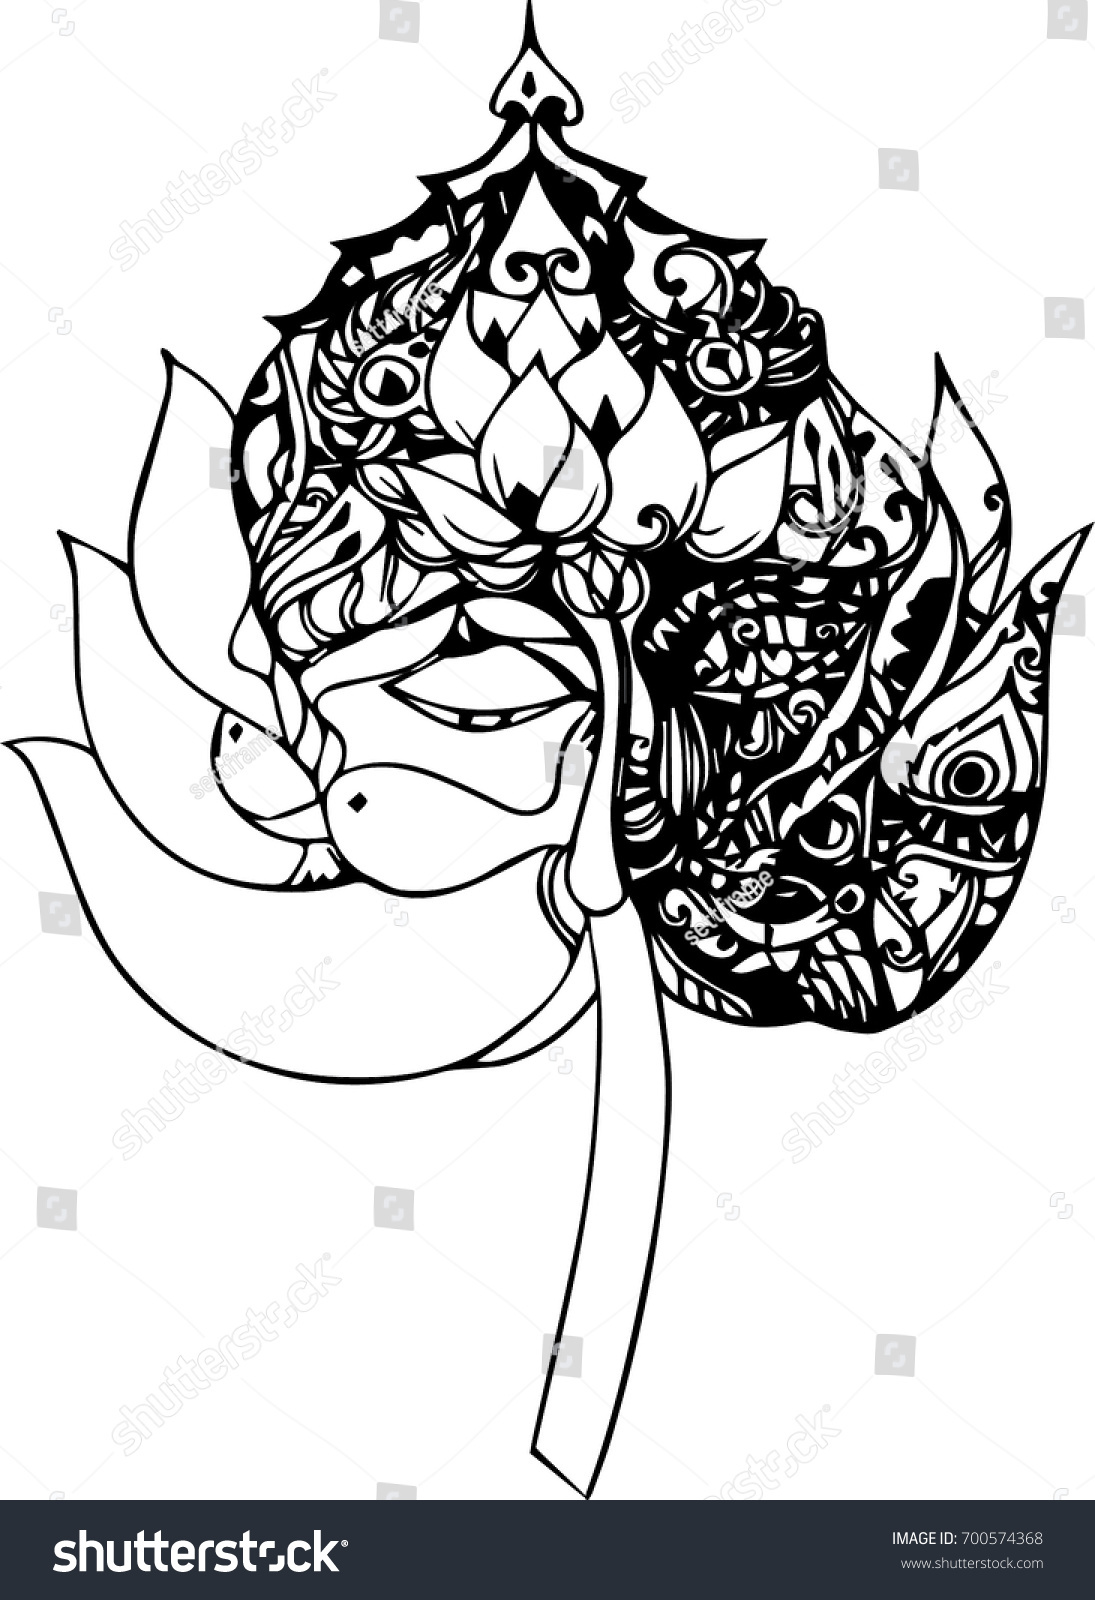 Hand draw lotus flower design tattoo stock vector 700574368 hand draw of lotus flower design for tattoo izmirmasajfo